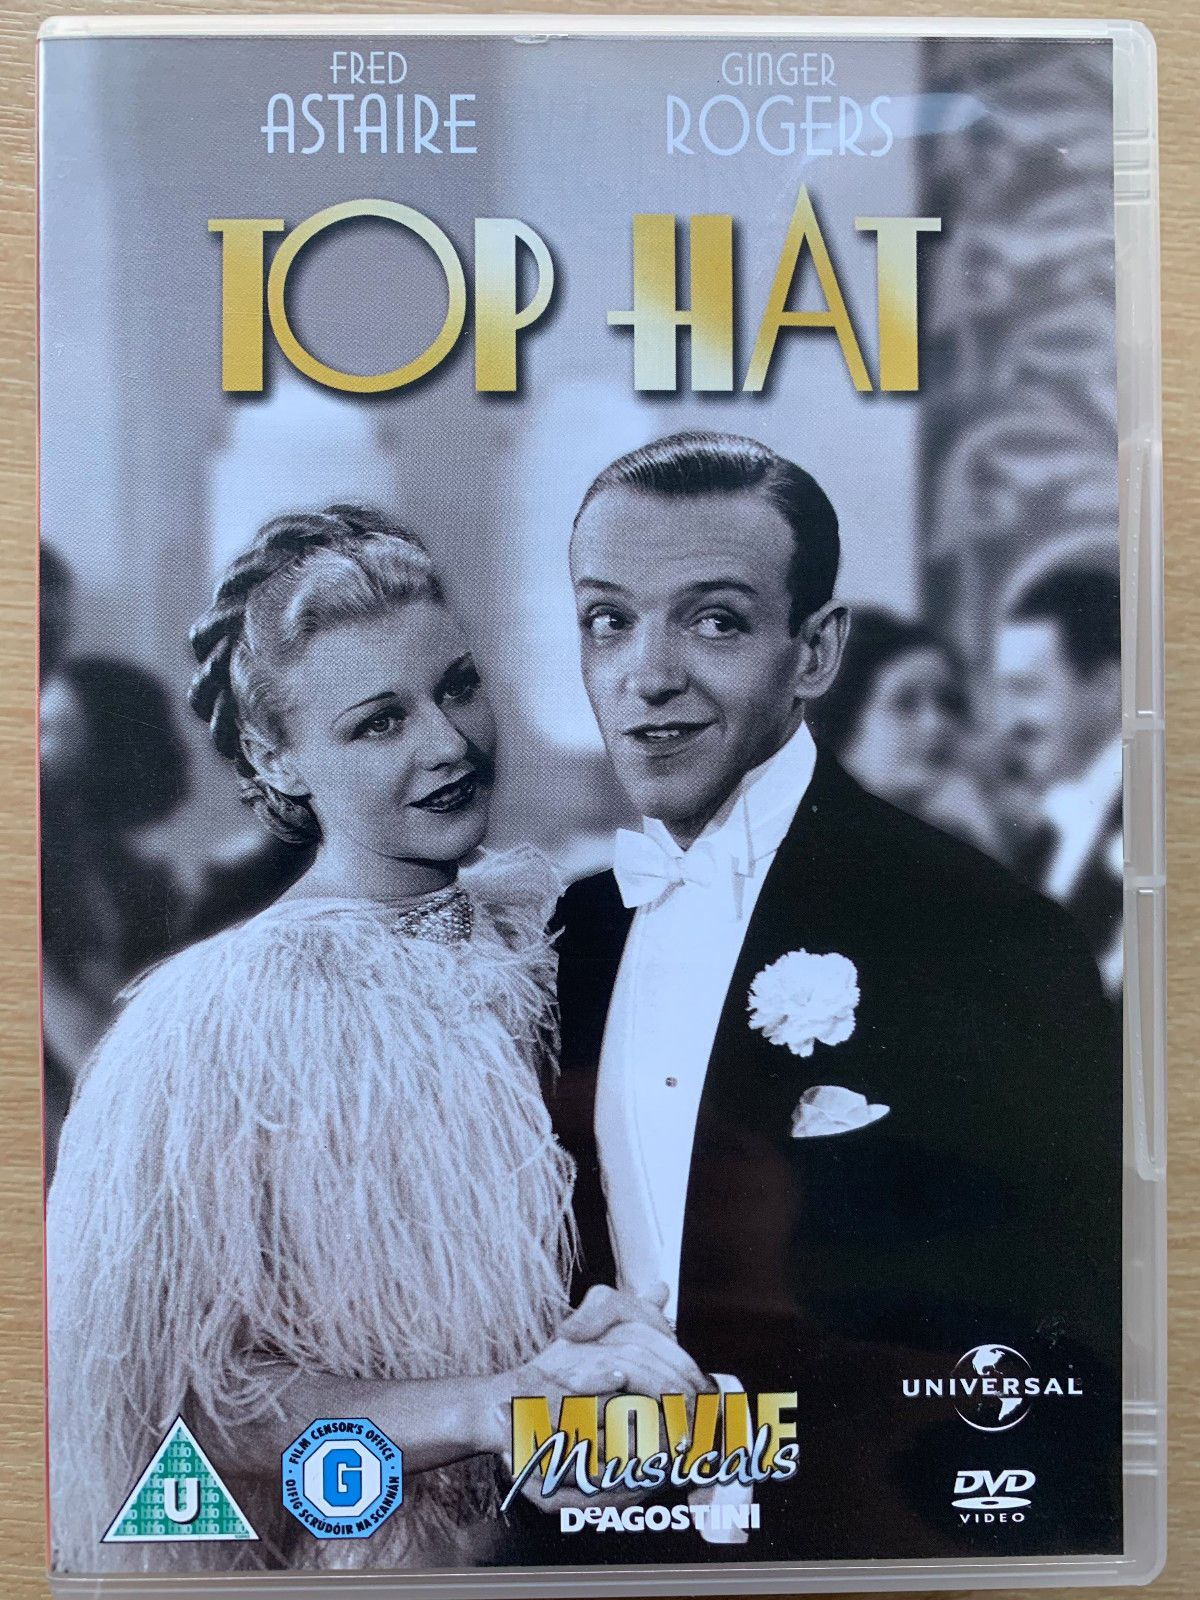 Top Hat Dvd 1935 Hollywood Musical Classic W Fred Astaire Ginger Rogers 12 50 Fred Astaire Classic Films List Ginger Rogers